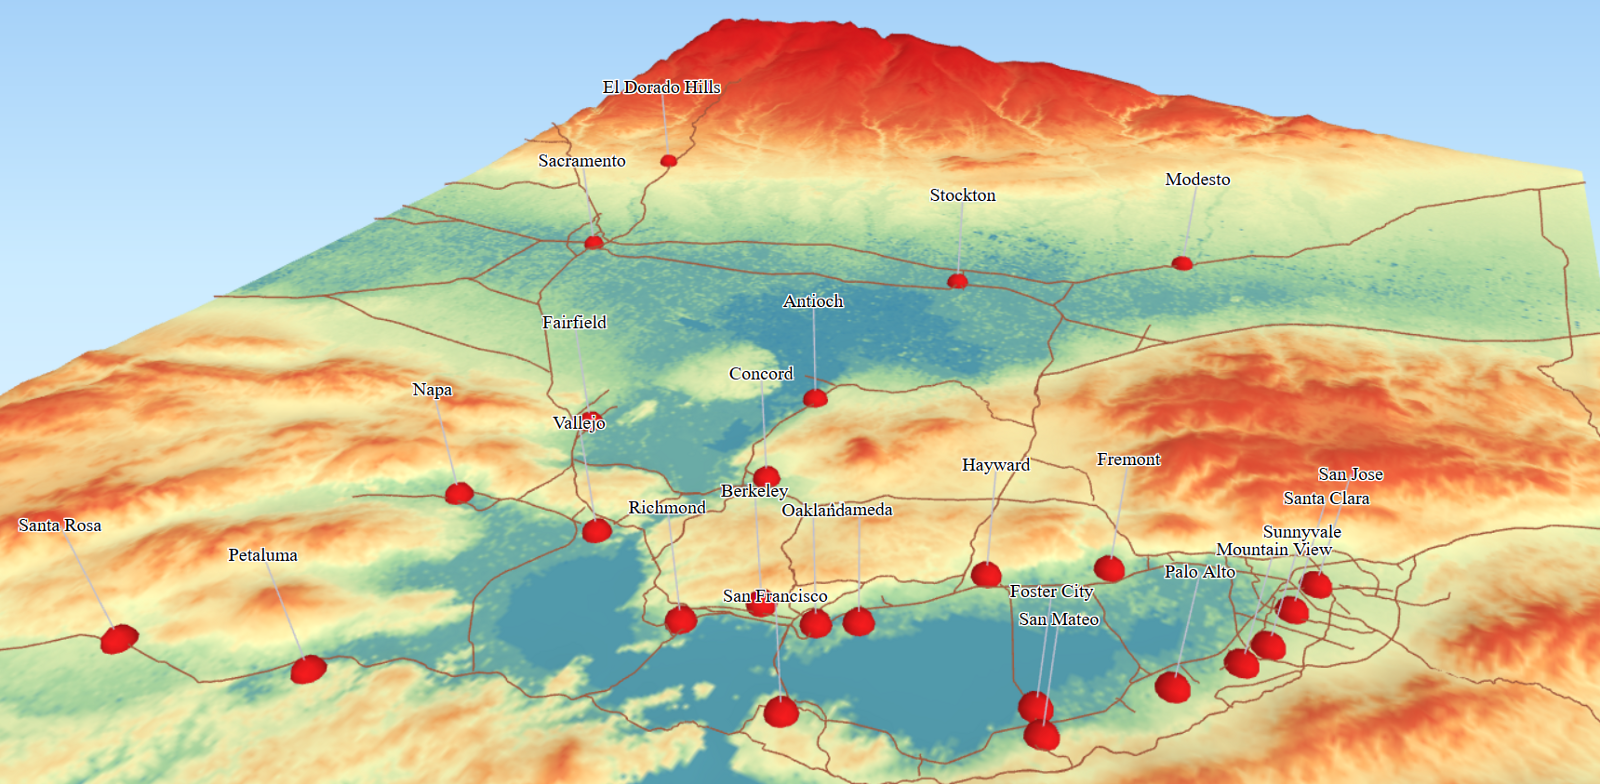 How To Make A 3d Topographic Map.Creating 3d Map In Qgis The Pointscene Diaries Medium